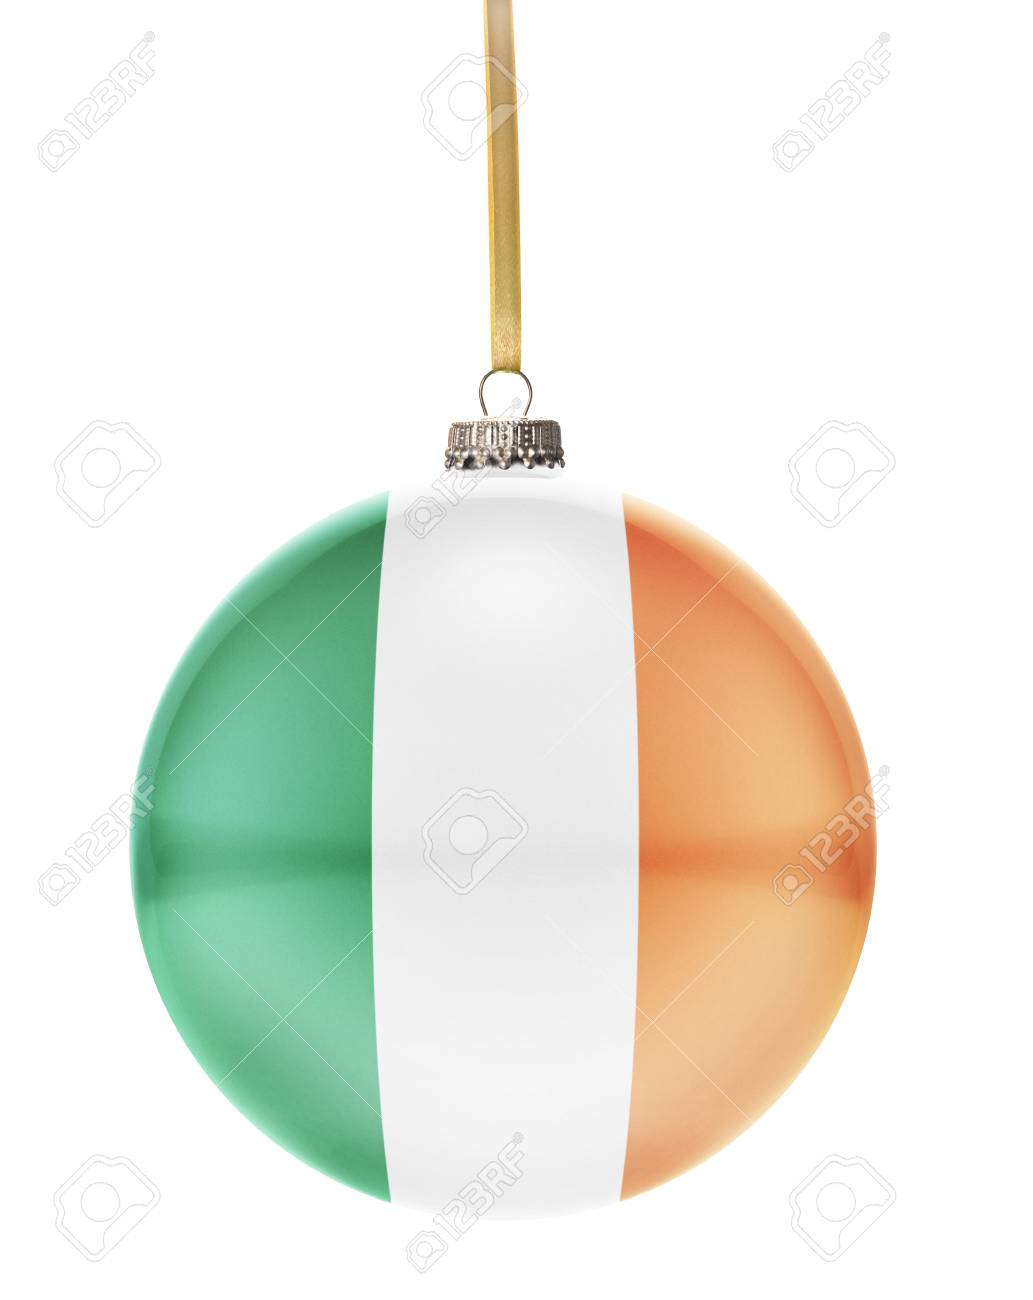 A Glossy Christmas Ball In The National Colors Of Ireland Hanging ...